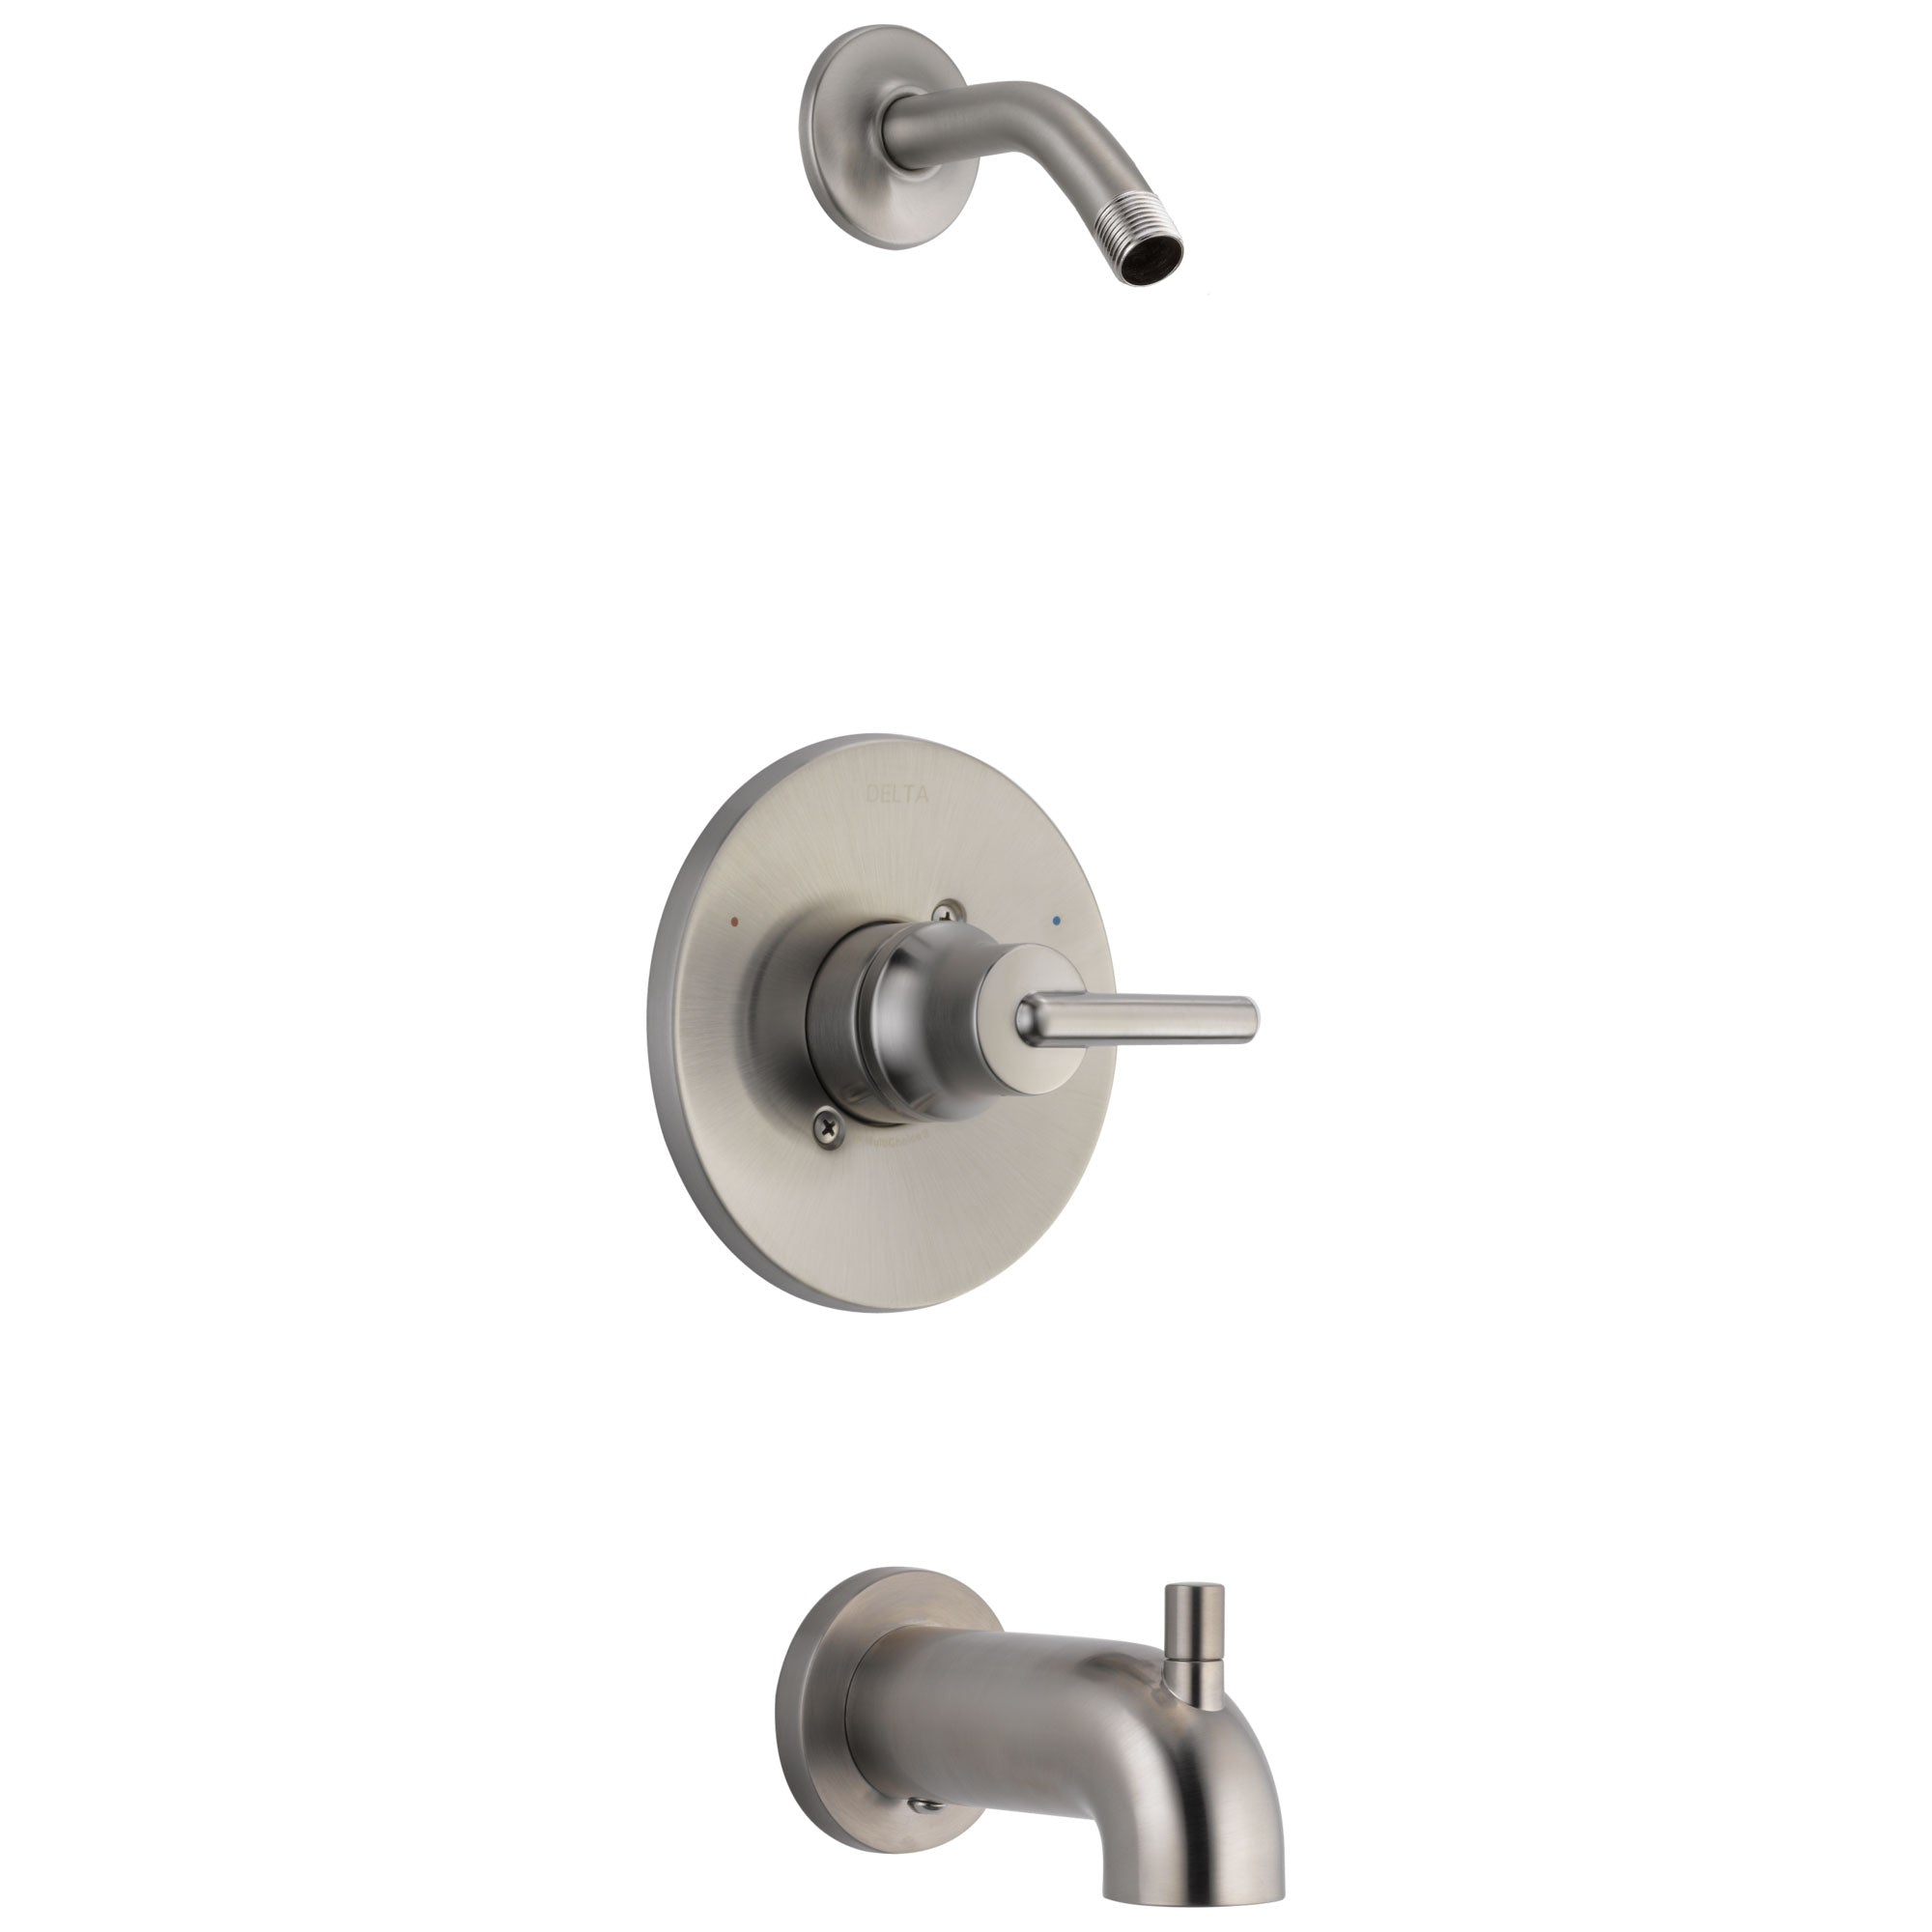 Delta Trinsic Collection Stainless Steel Finish Modern Lever Tub and Shower Combination Faucet Trim - Less Showerhead Includes Valve with Stops D2396V